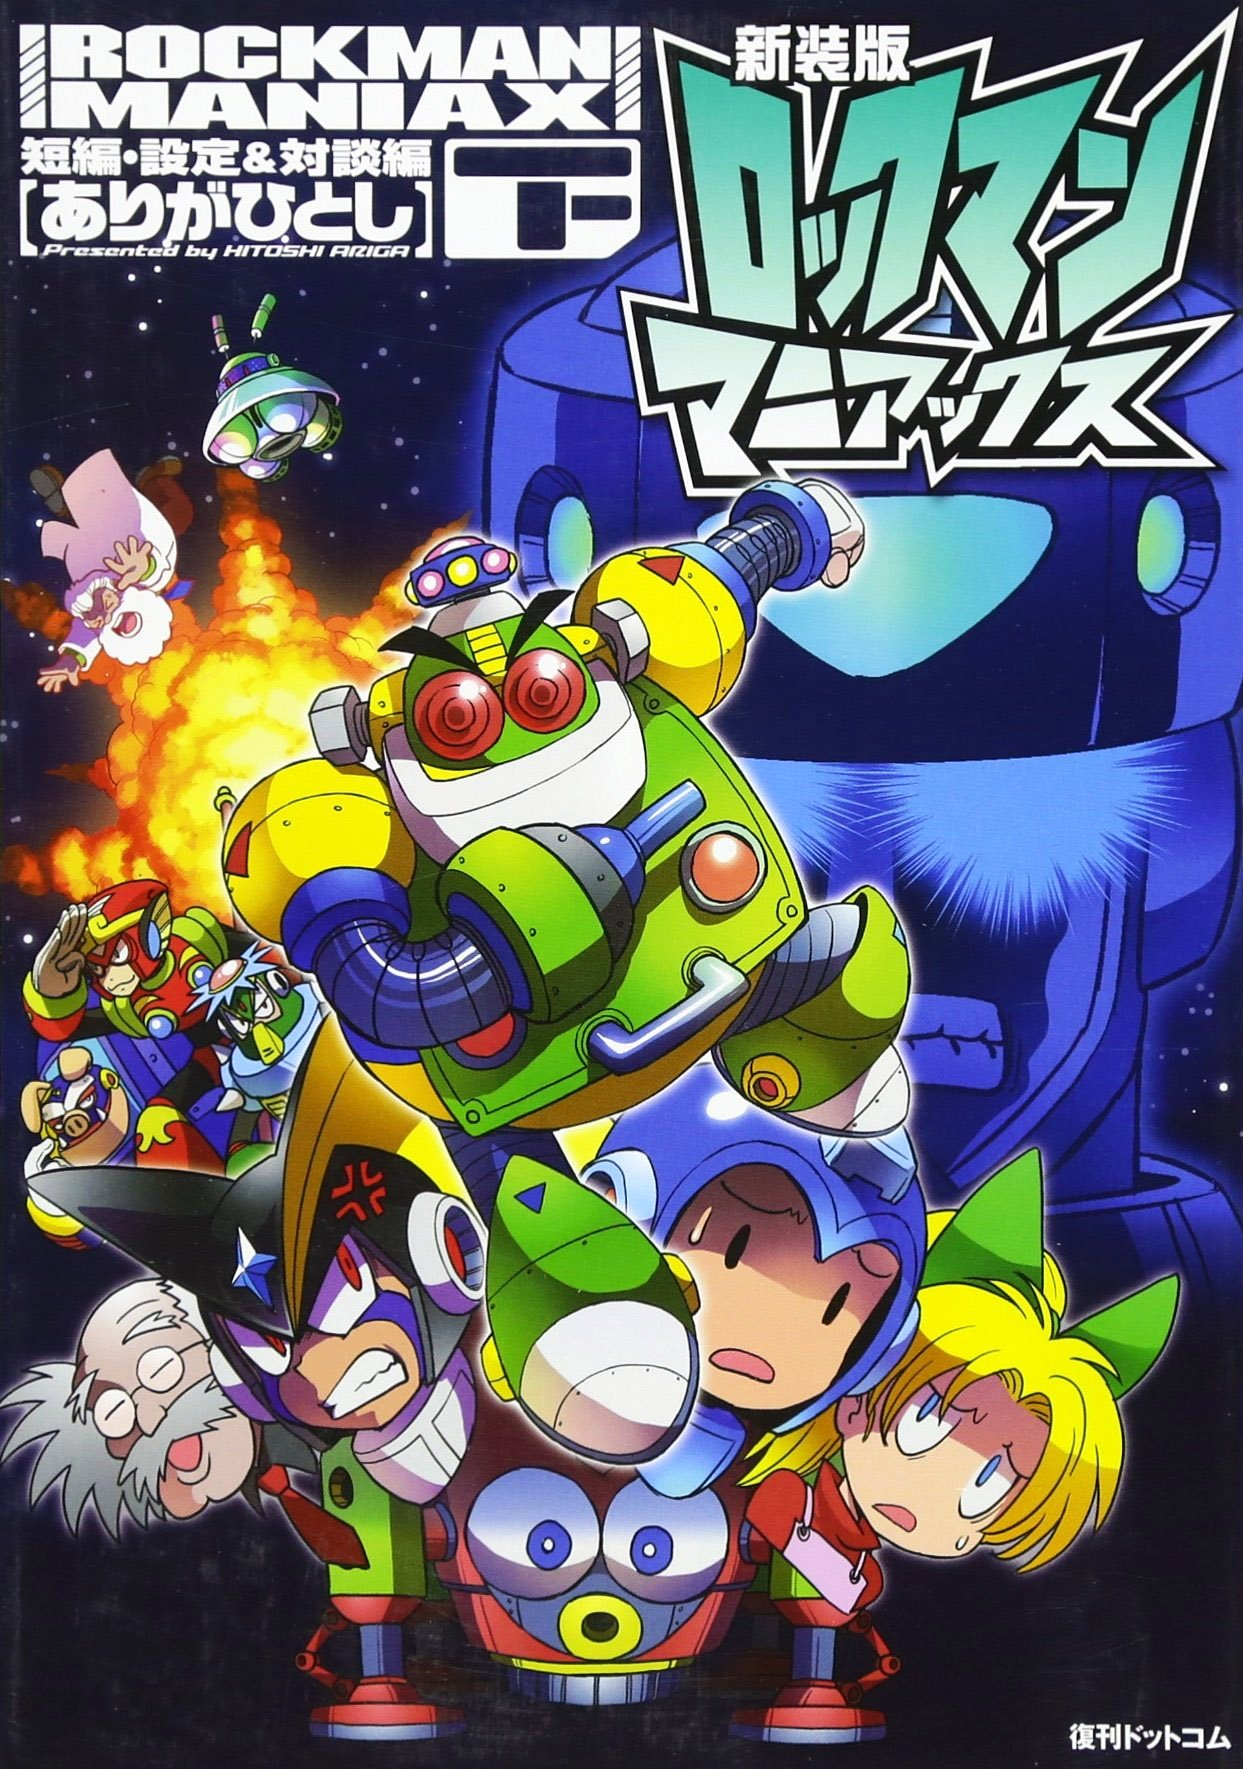 New Edition Rockman Maniax (part 2) - Short Stories, Settings, and Dialogue Ed